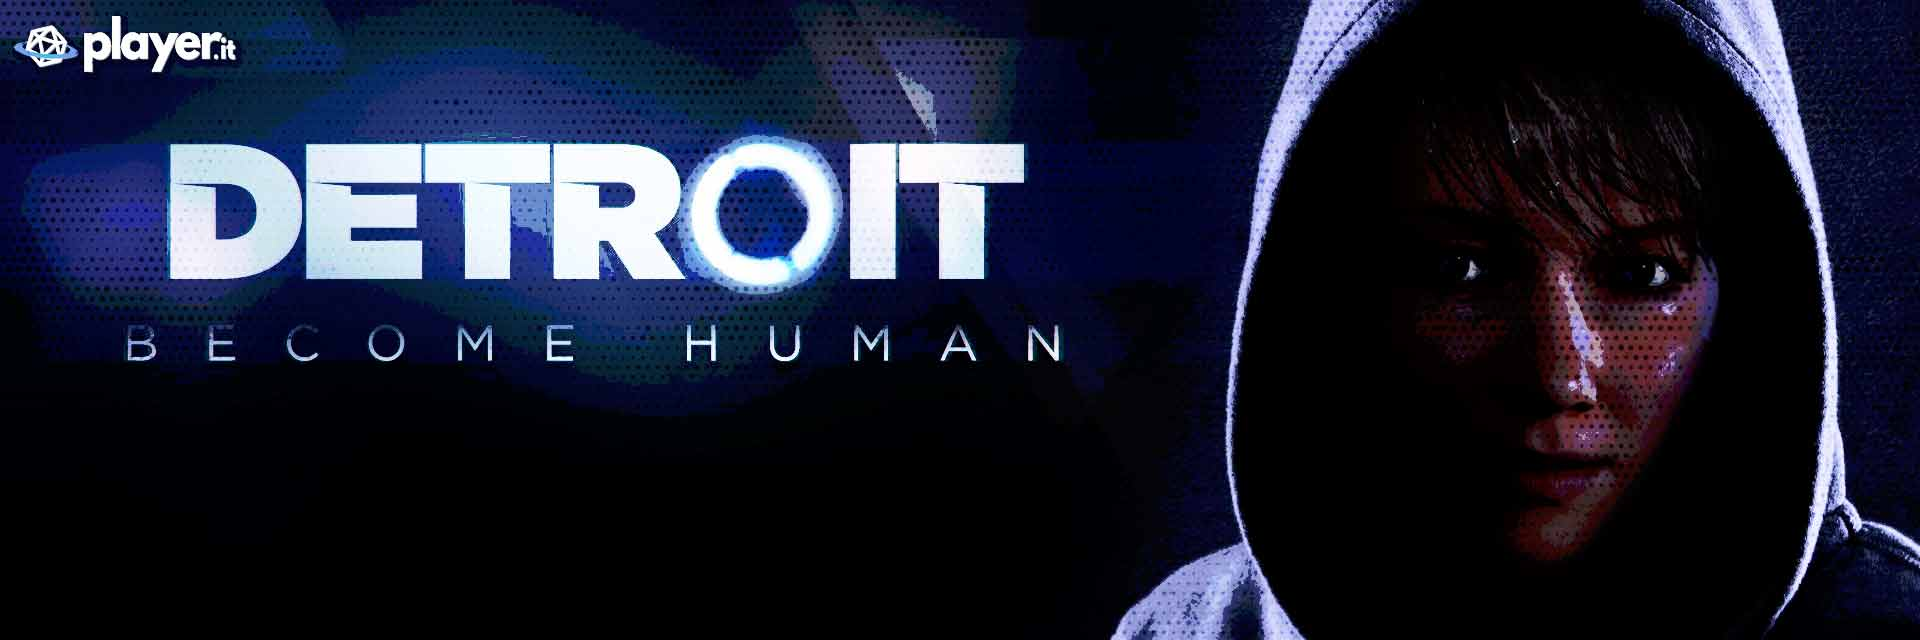 detroit become human wallpaper in hd